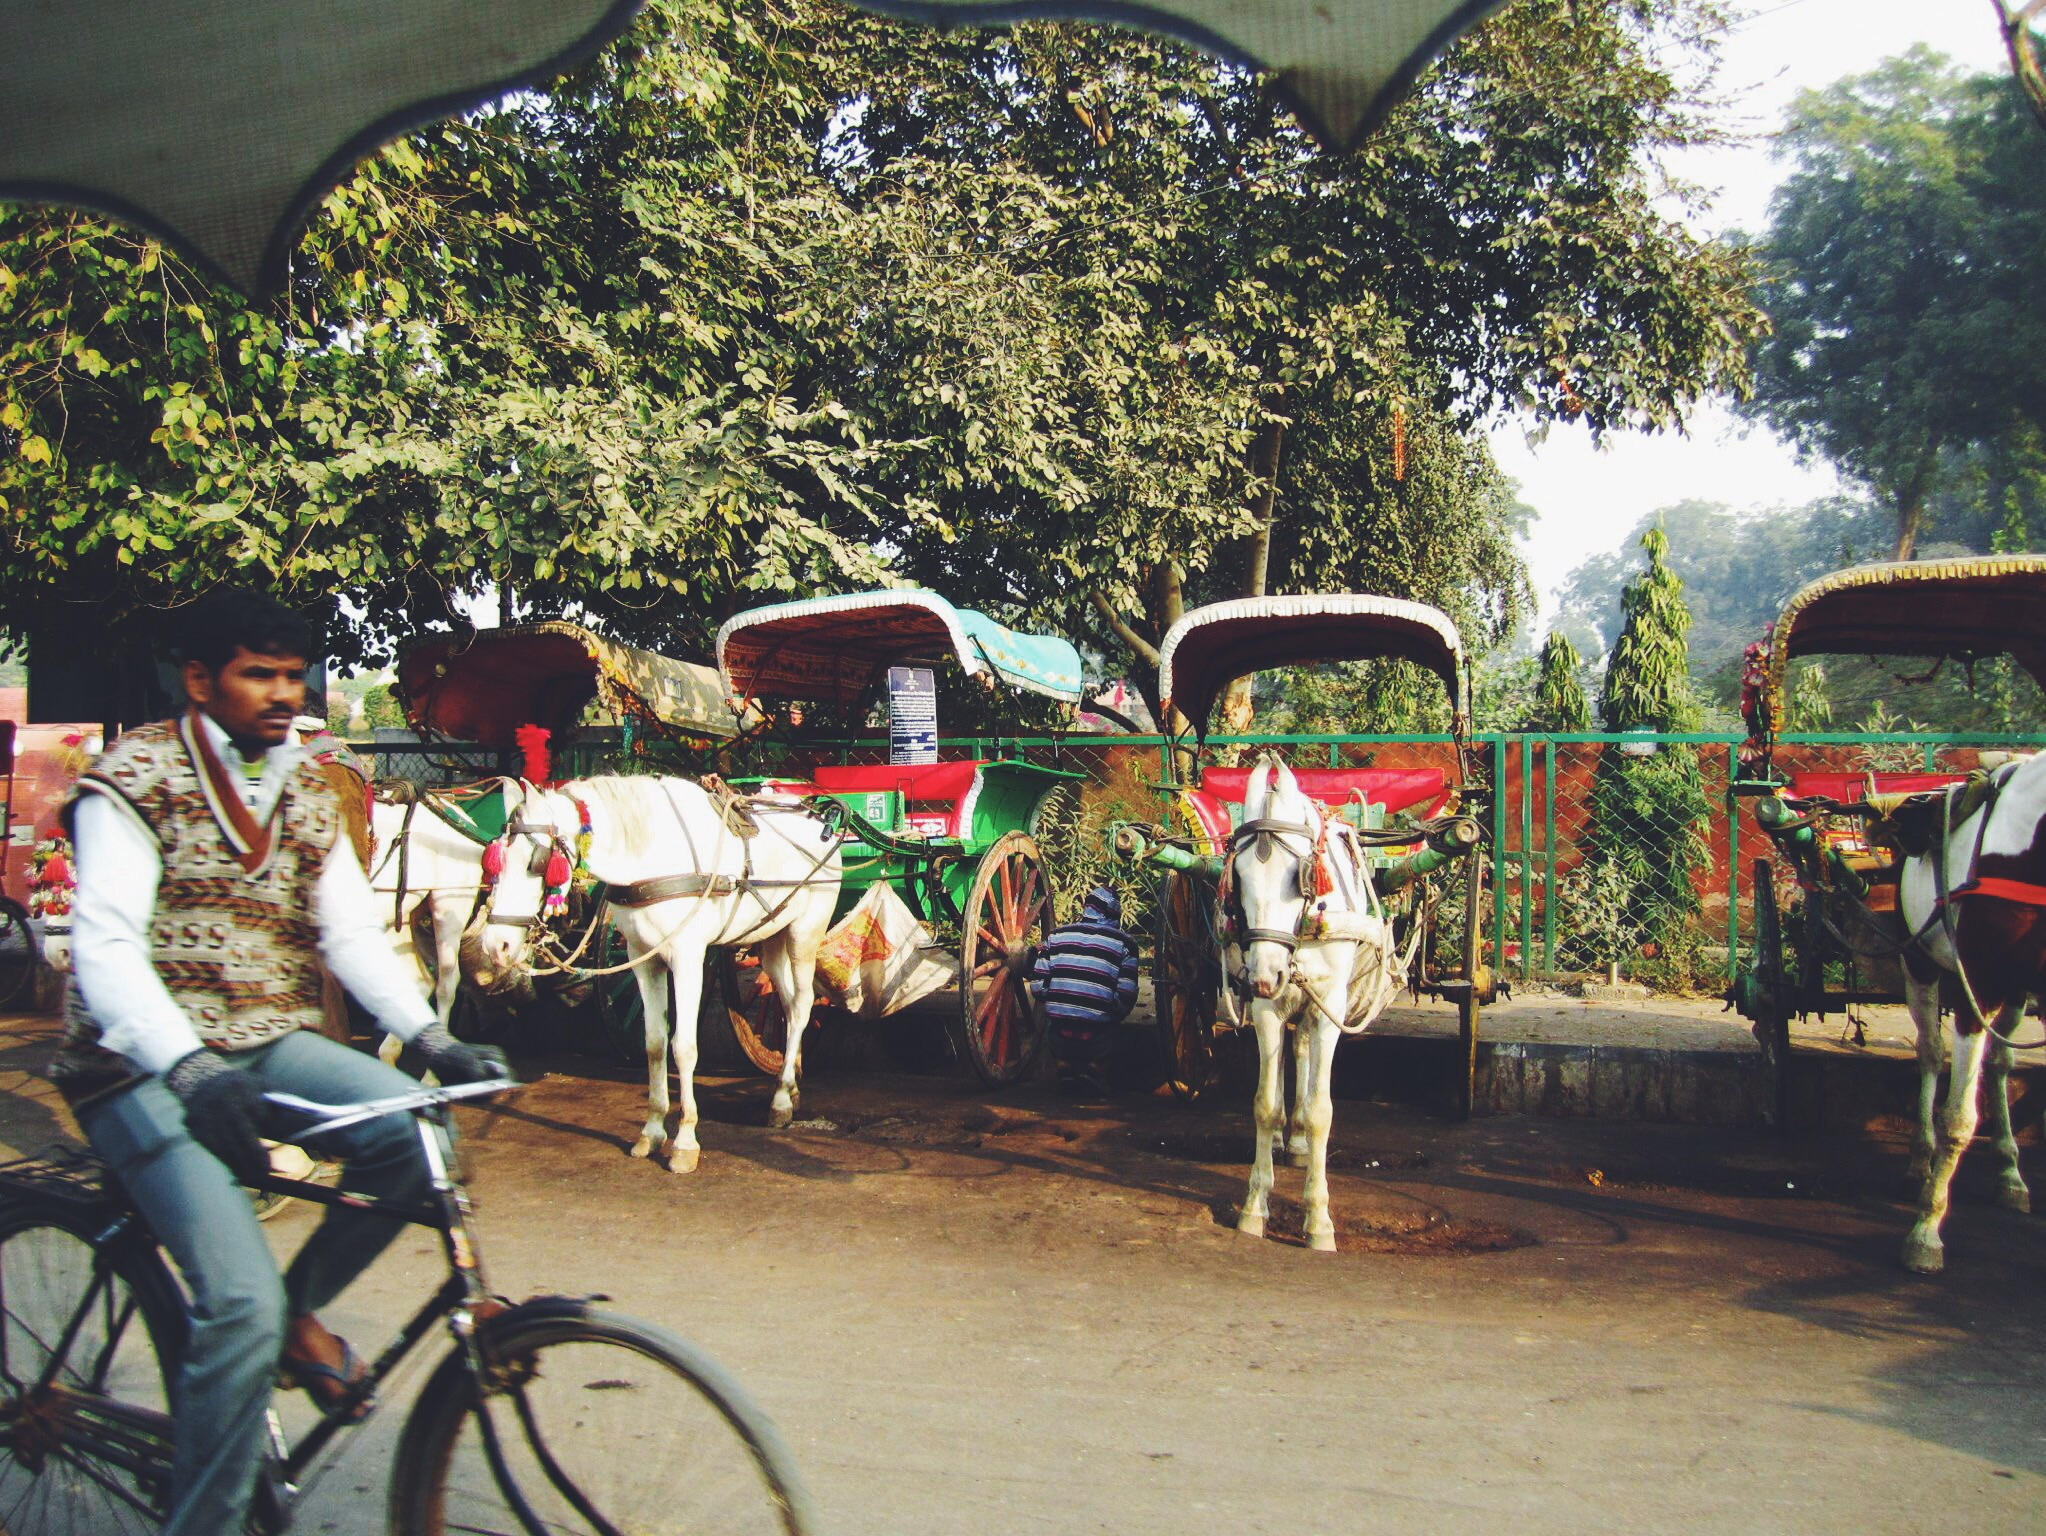 Passing the ornately decorated horse carriages on our way to the Taj Mahal entrance